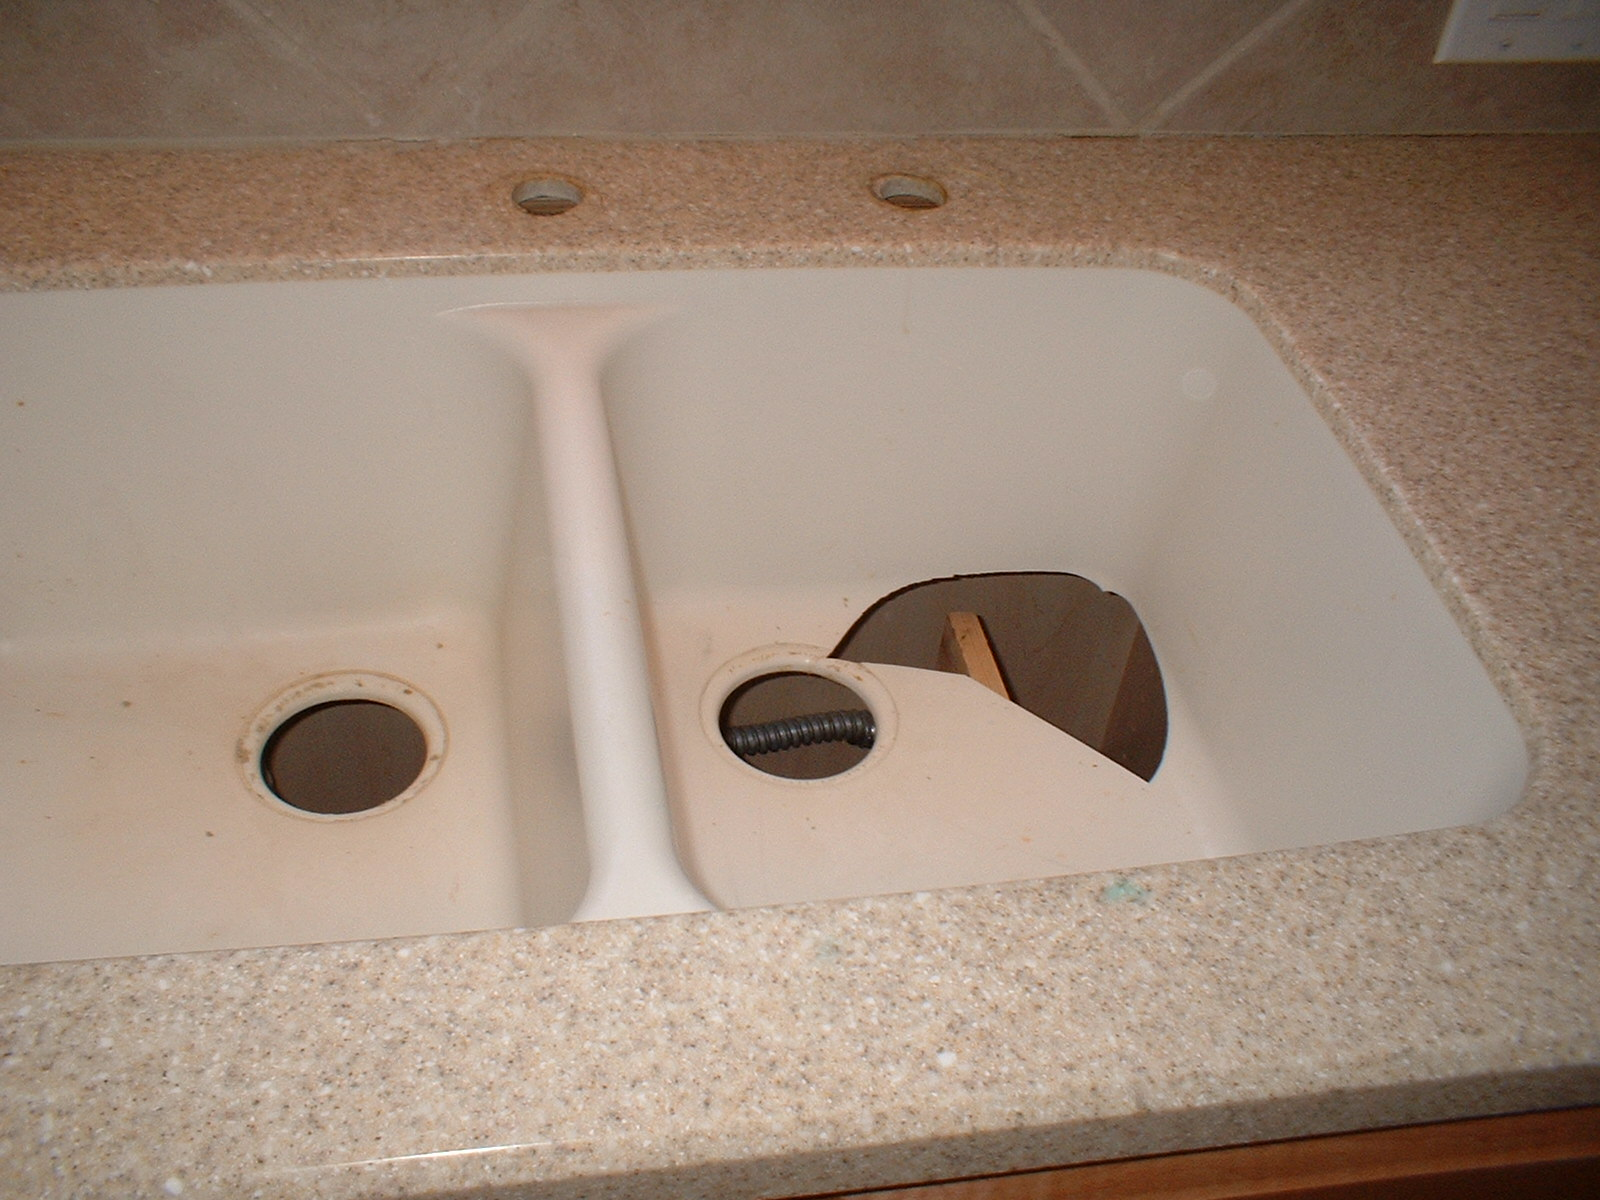 High Quality Replace Damaged Sinks, Sink Replacement,repair Chipped Sink,solid Surface Sink  Repair